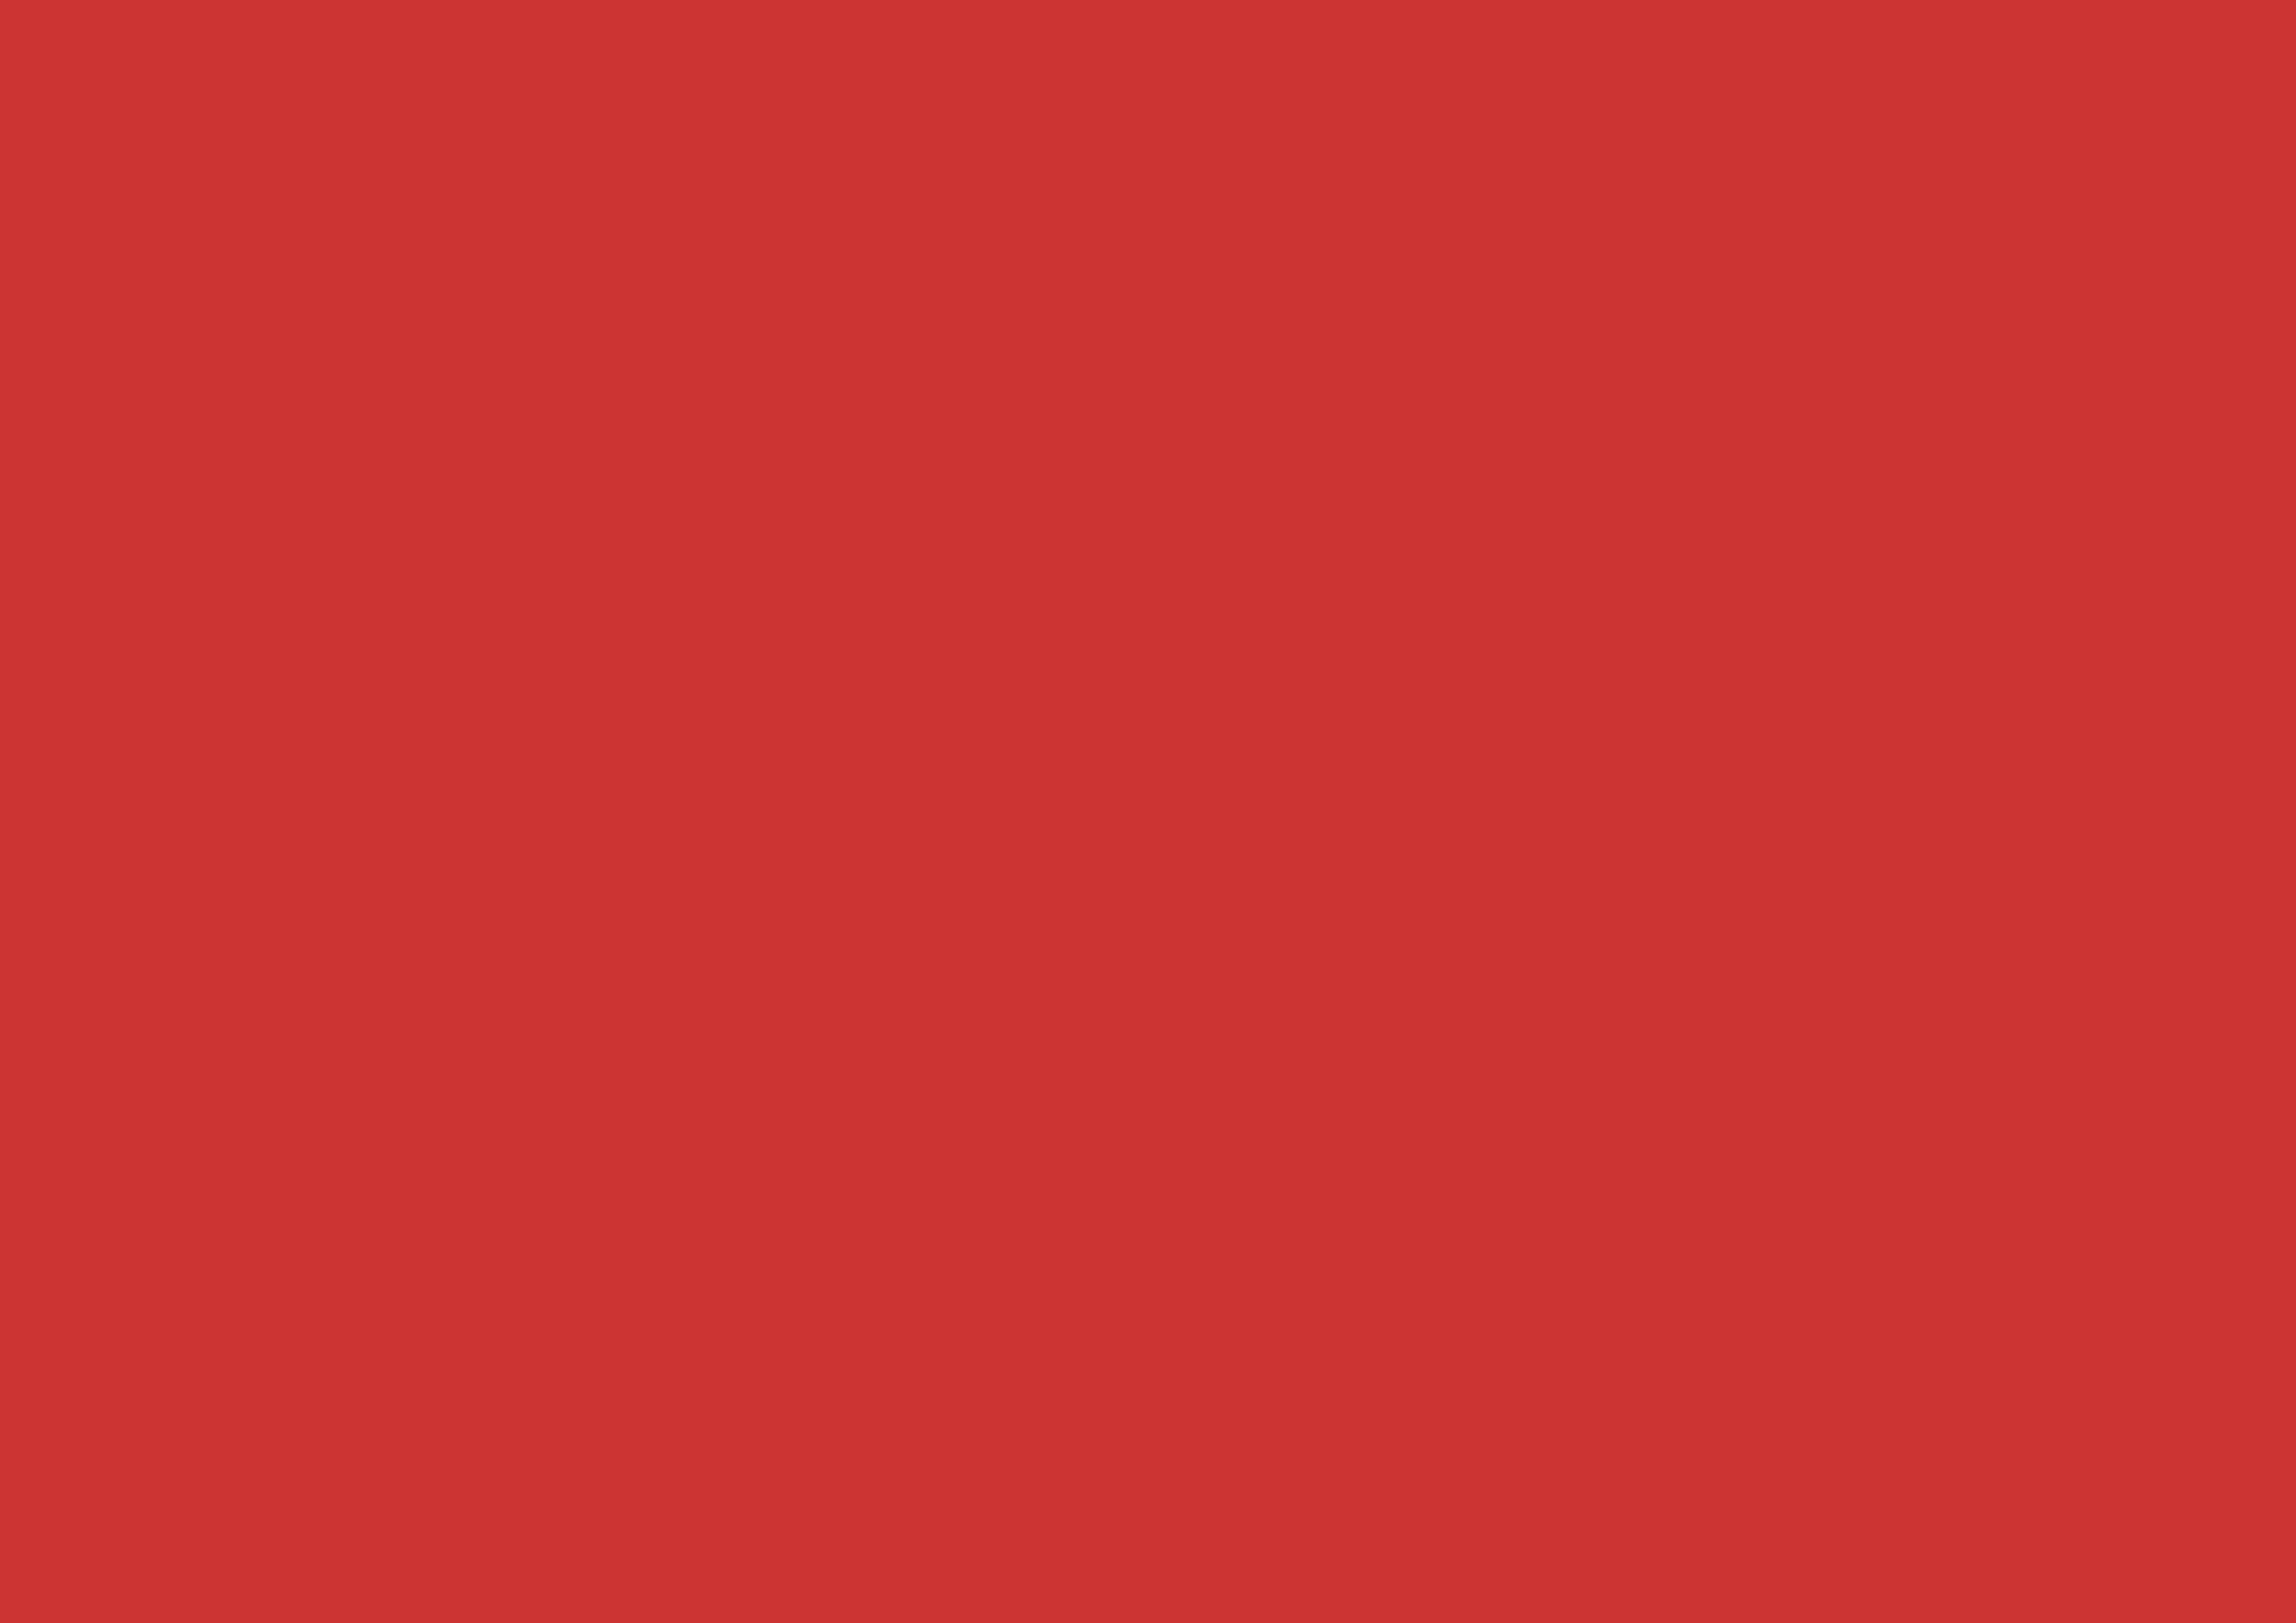 3508x2480 Persian Red Solid Color Background